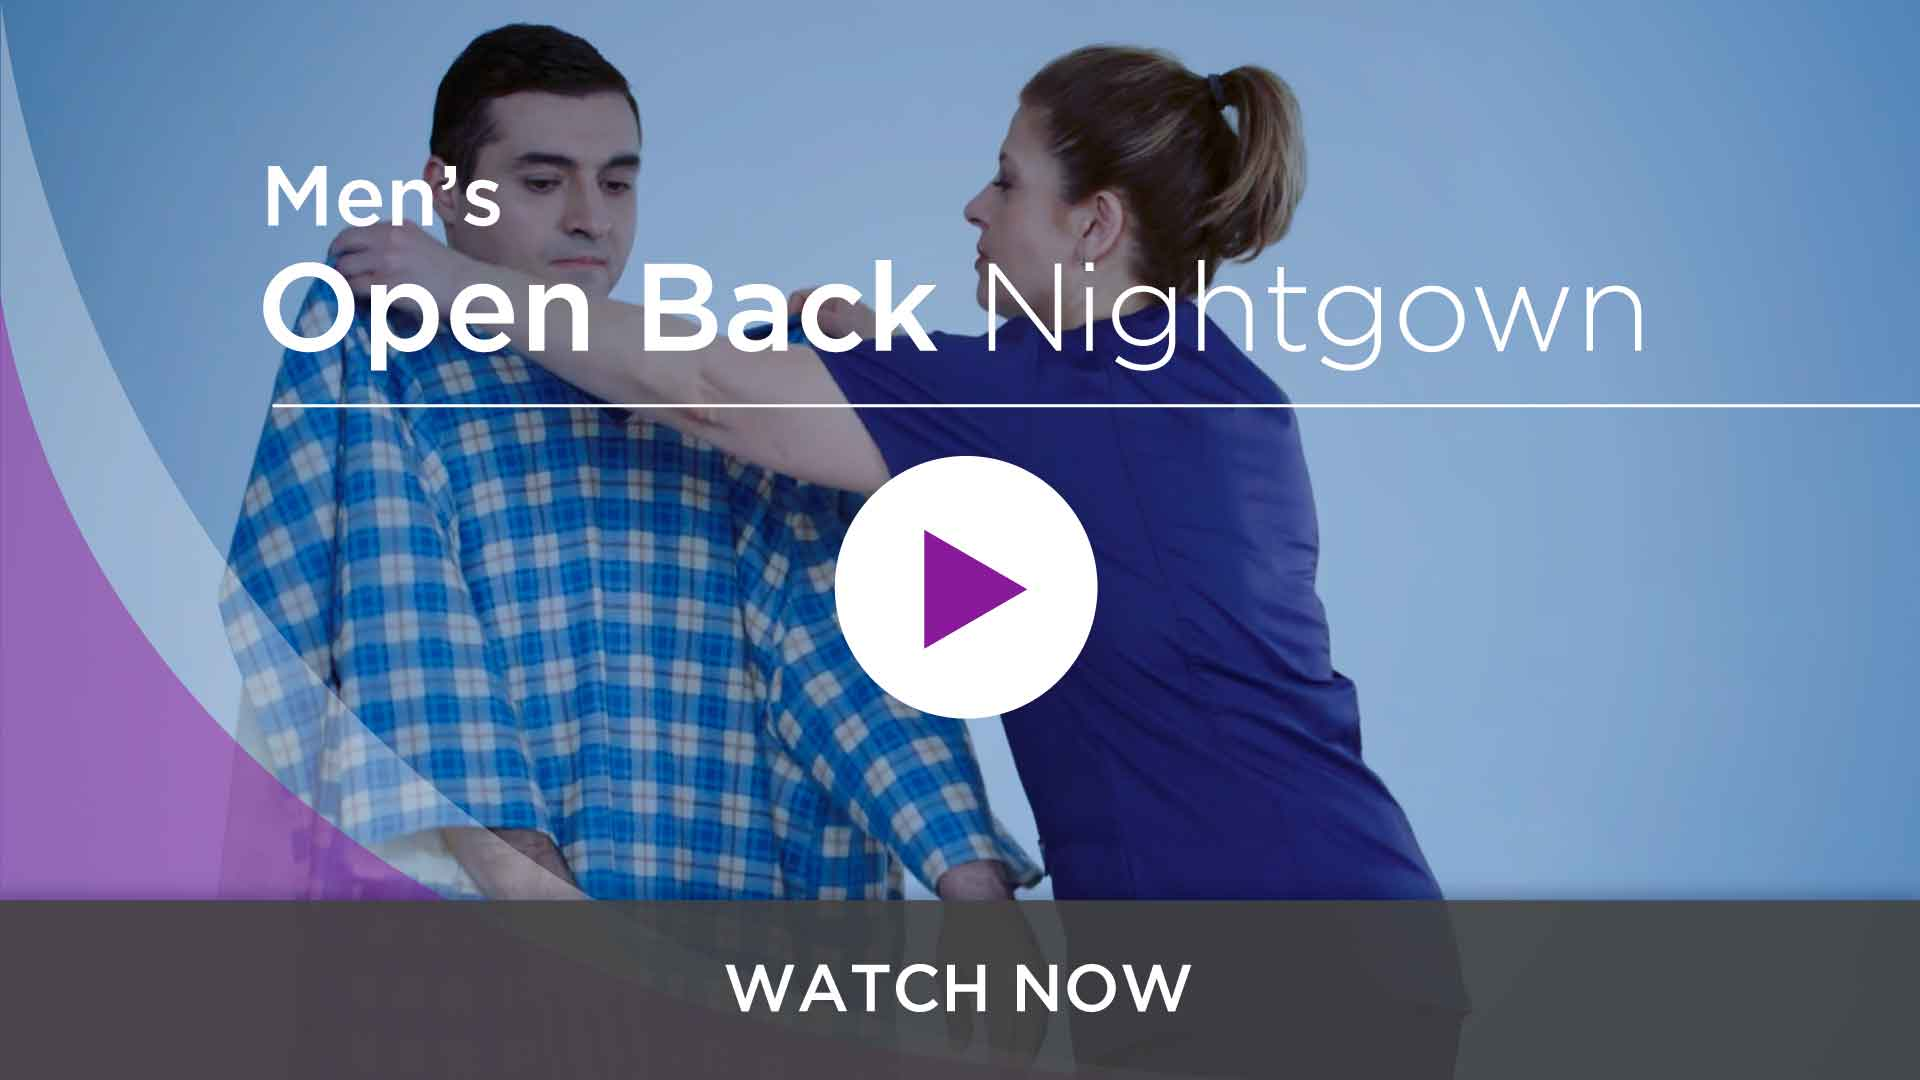 Men's Adaptive Hospital Nightgowns